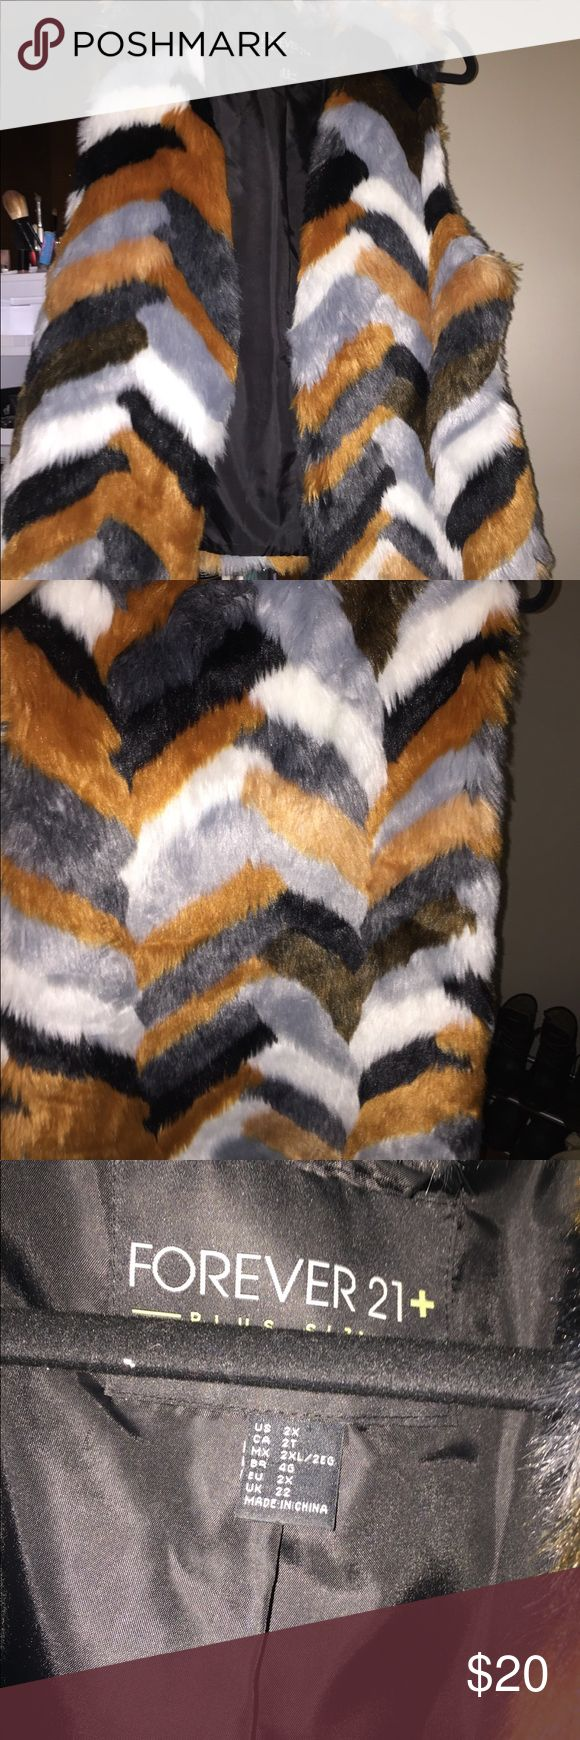 Multicolor Fur Vest Worn once Forever 21 Jackets & Coats Vests